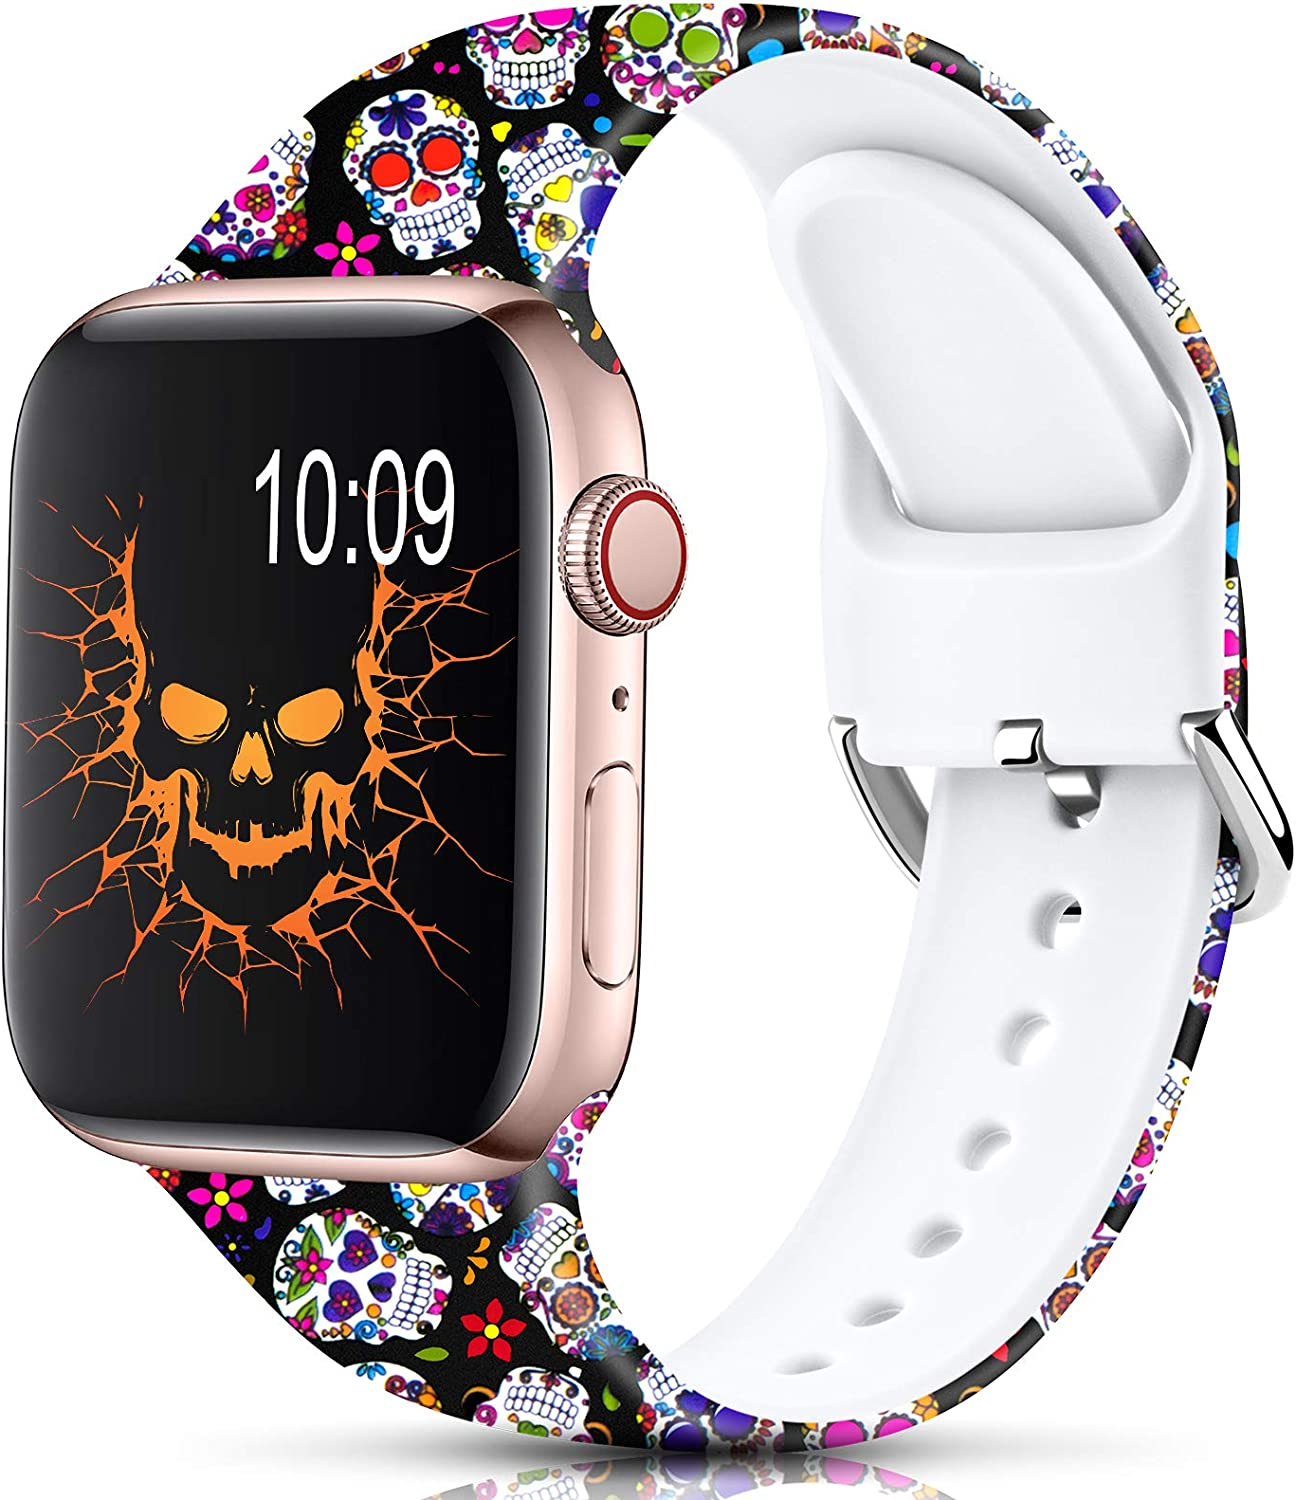 Sport Band Compatible with Apple Watch Bands 38mm 40mm 42mm 44mm for Women Men,Floral Silicone Printed Fadeless Pattern Replacement Strap Band for iWatch Series 3 6 5 4 2 1 SE,Skull,38/40 mm M/L